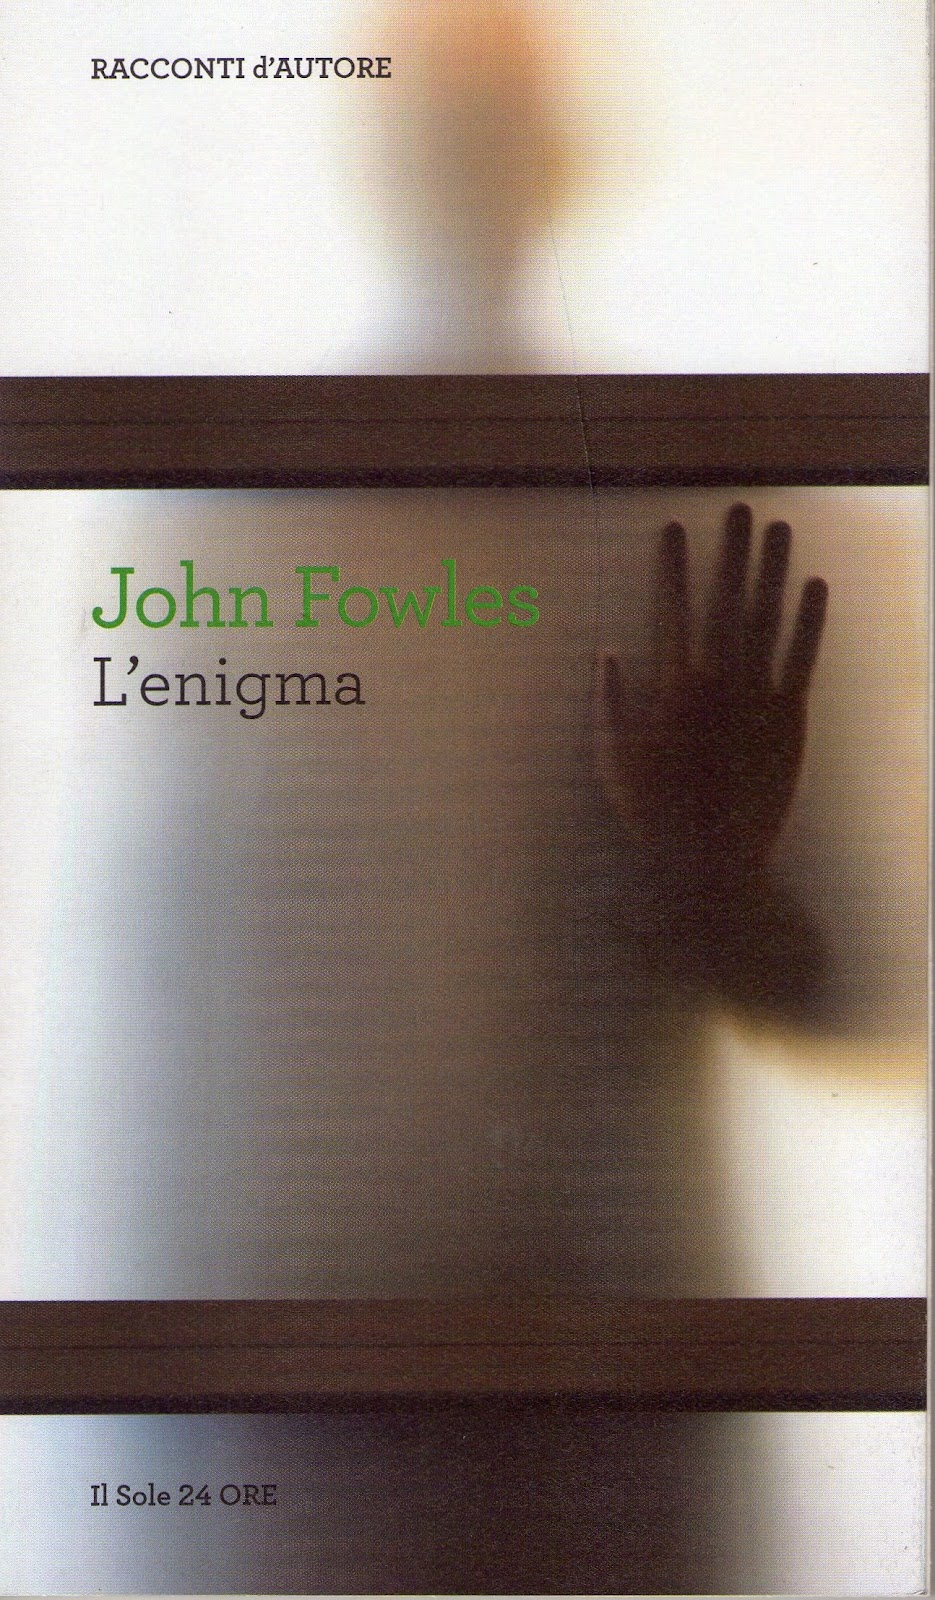 john fowles the enigma essay The enigma has 62 ratings and 7 reviews kirsty said: as the title itself suggests, the enigma by john fowles is a short story that is surrounded by myst.